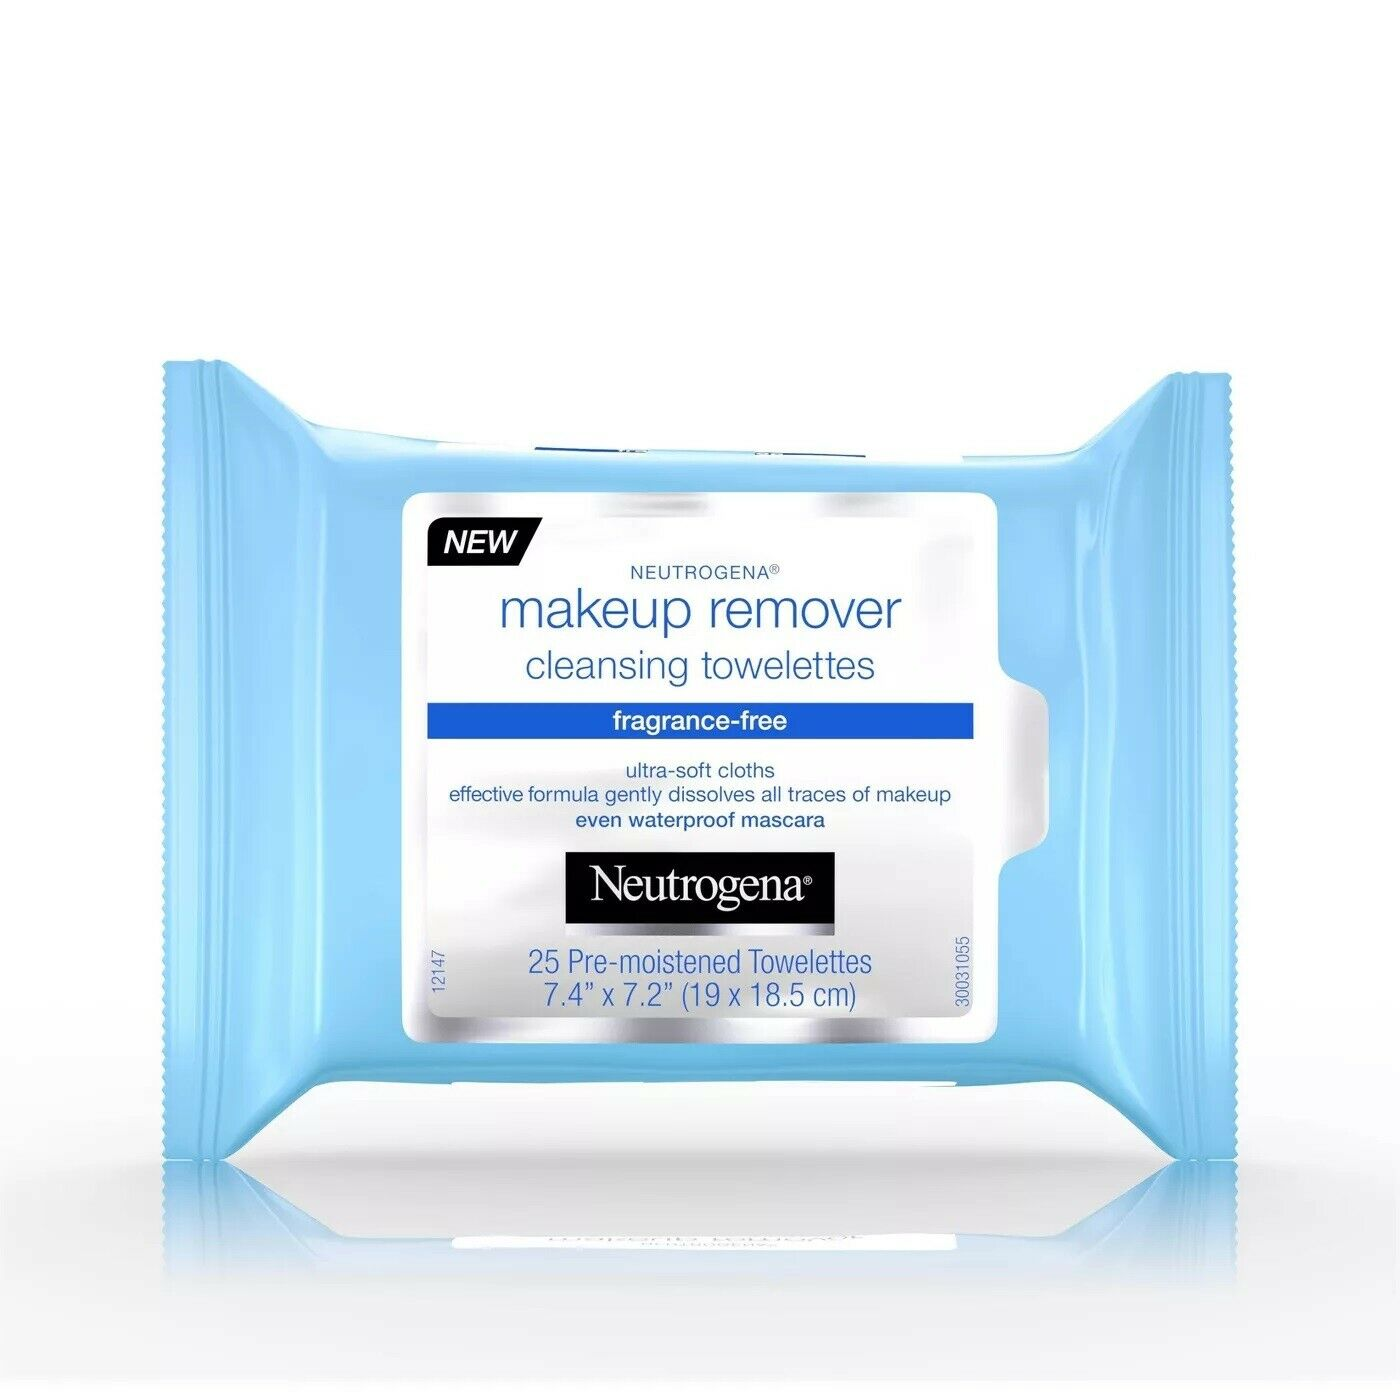 Neutrogena Makeup Remover Cleansing Face Wipes,Each 25 ct.,